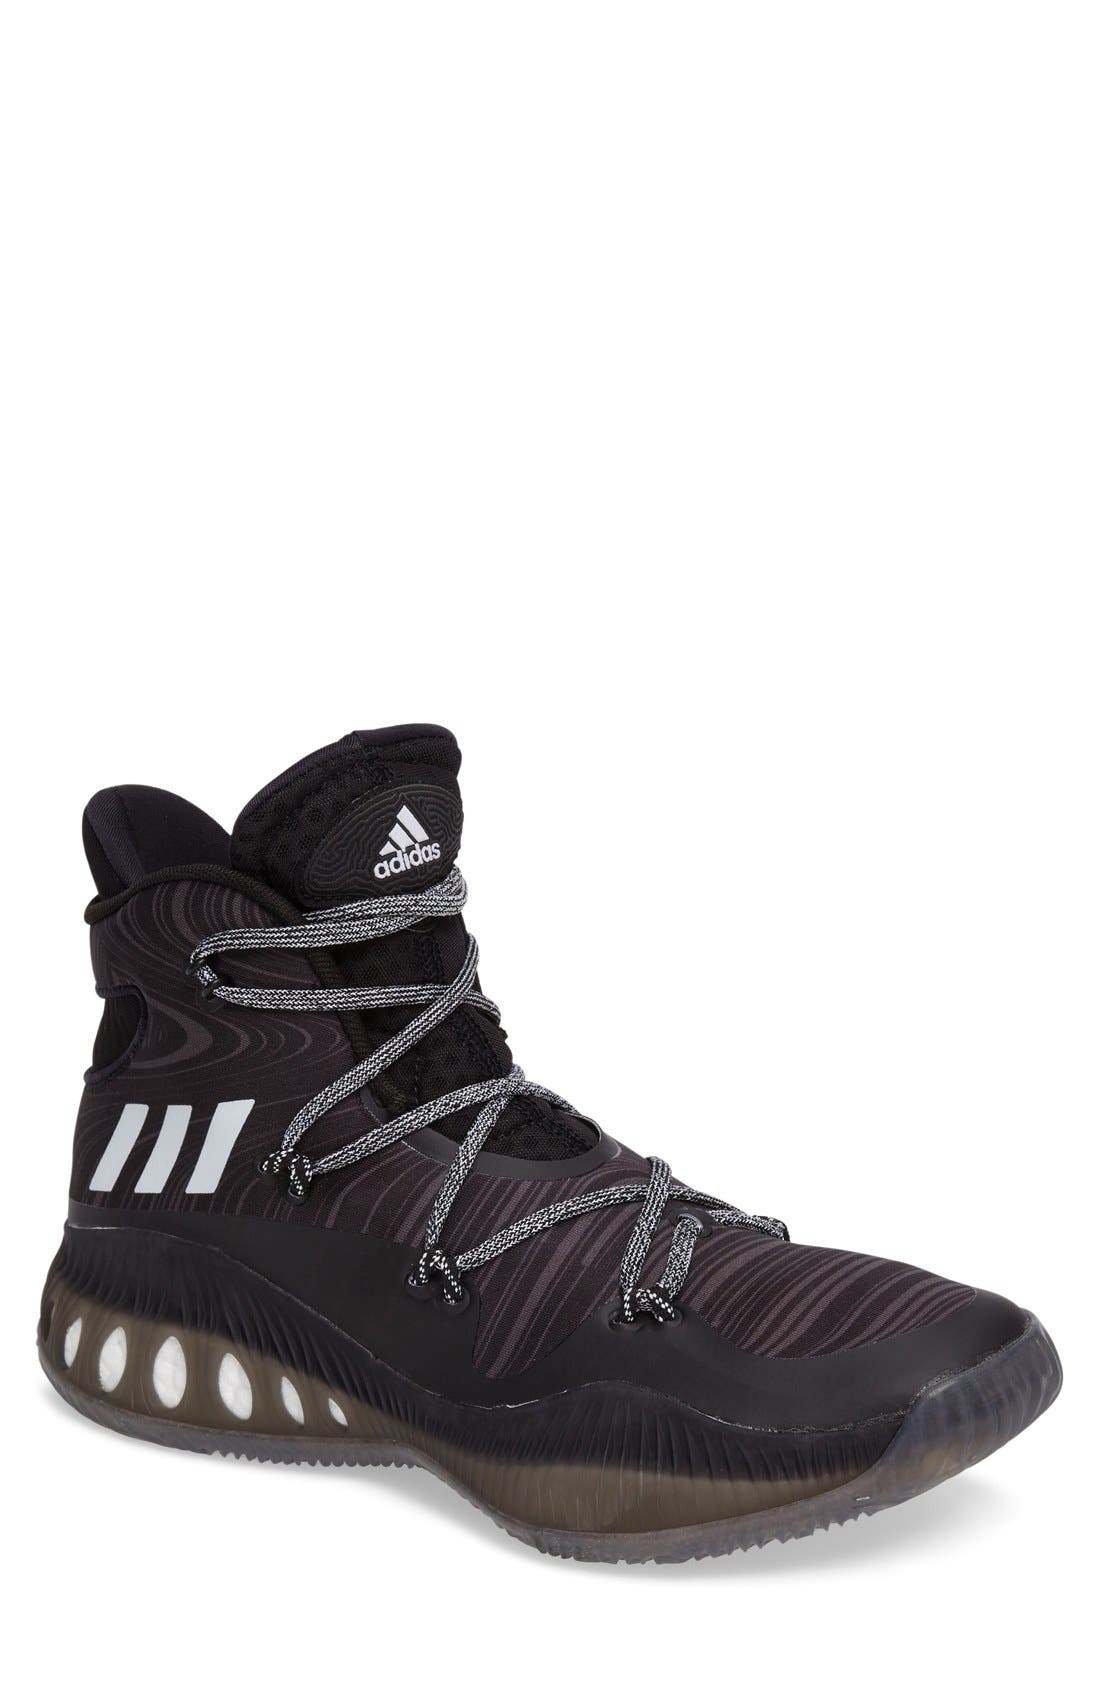 ADIDAS Crazy Explosive Basketball Shoe